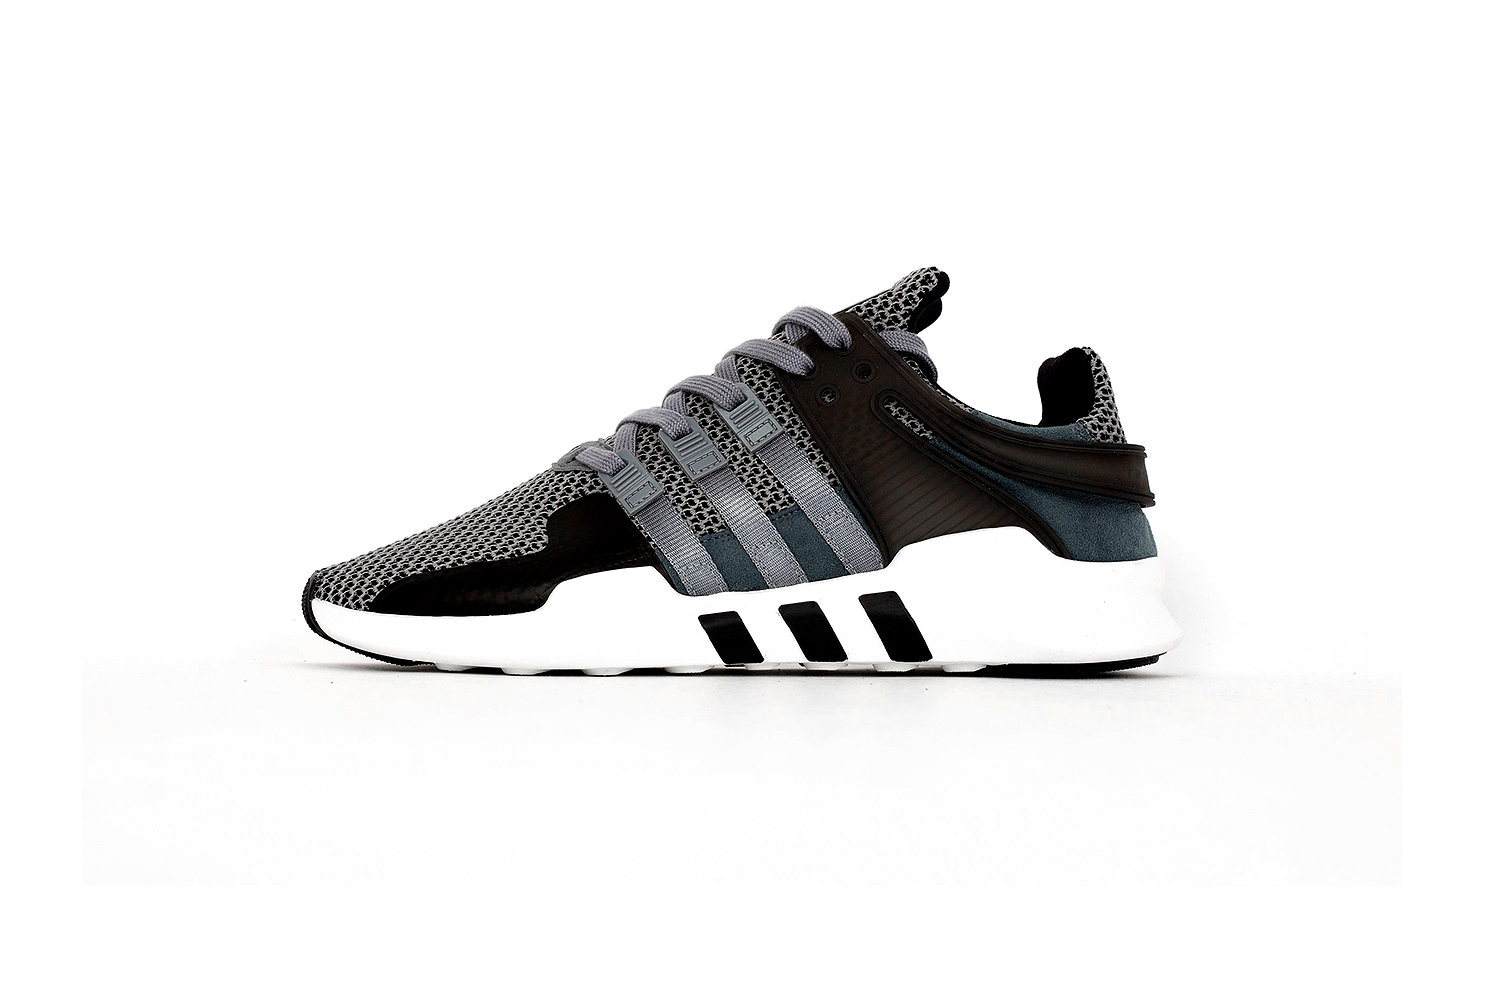 adidas eqt adv support 91 16 grey sapato sneakerstore. Black Bedroom Furniture Sets. Home Design Ideas